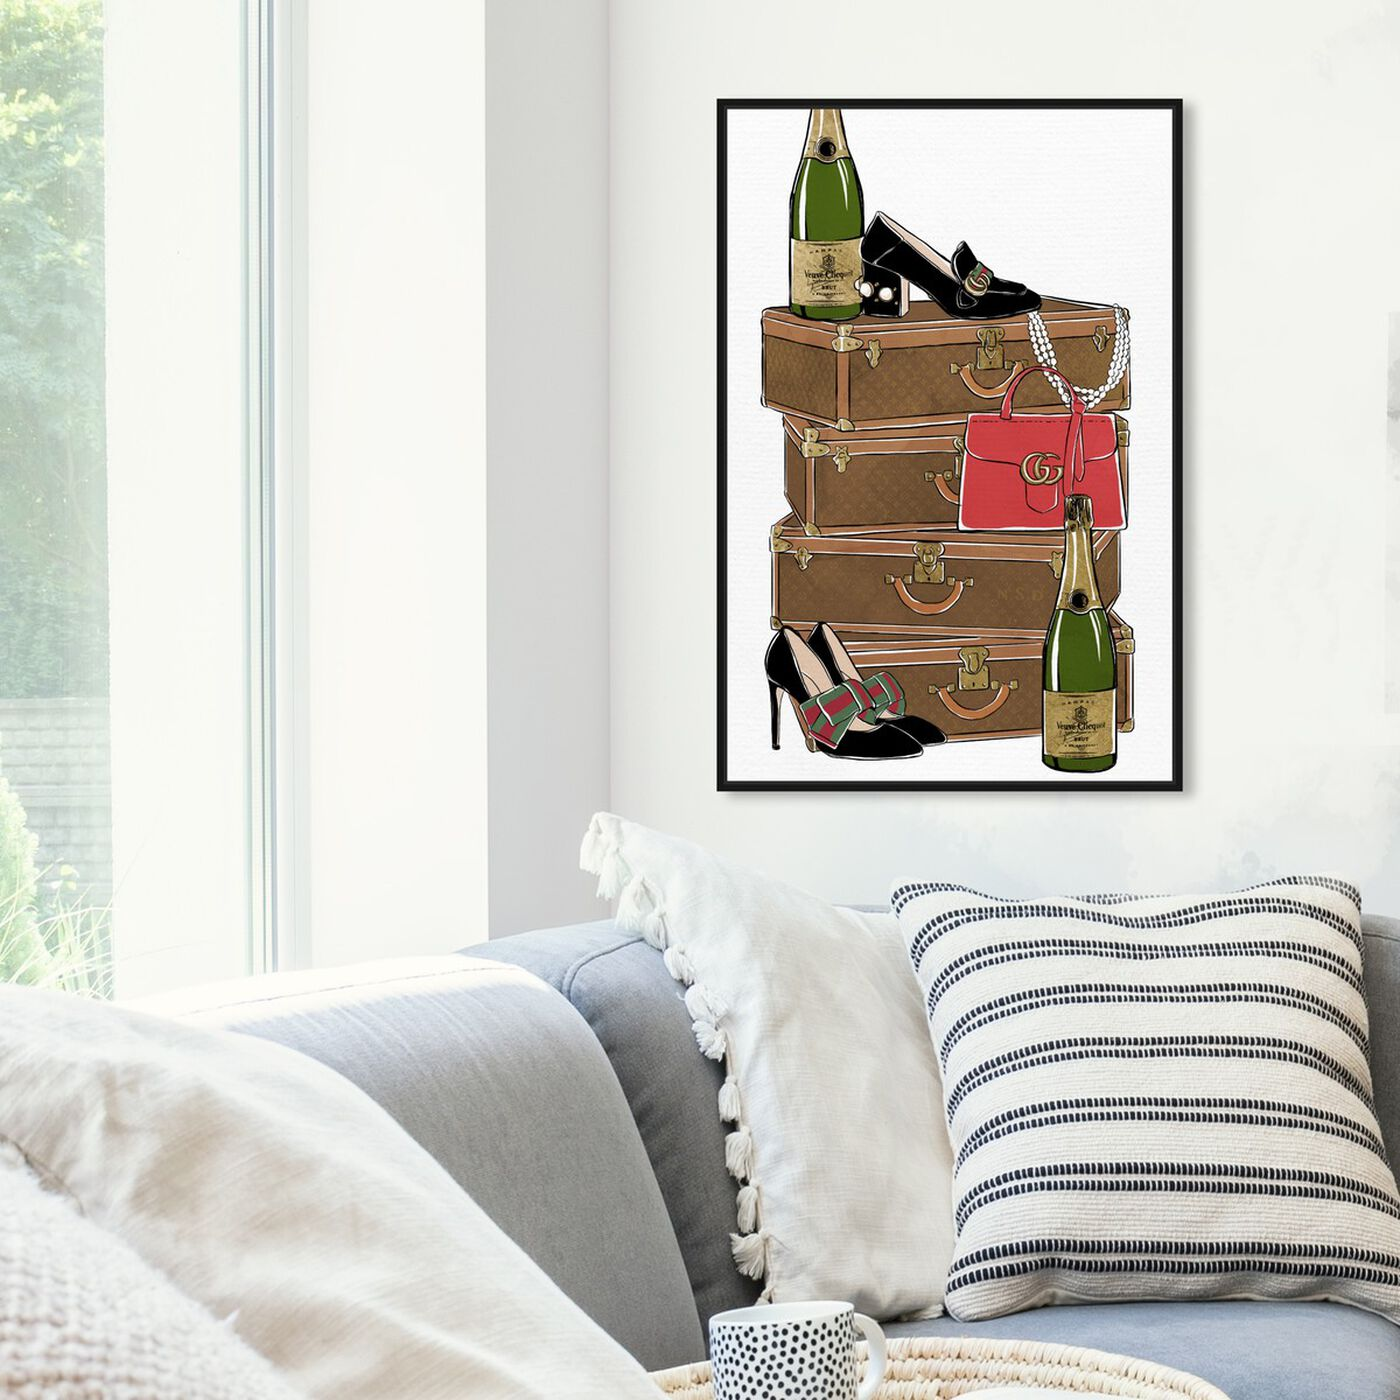 Hanging view of Traveling Party featuring fashion and glam and travel essentials art.